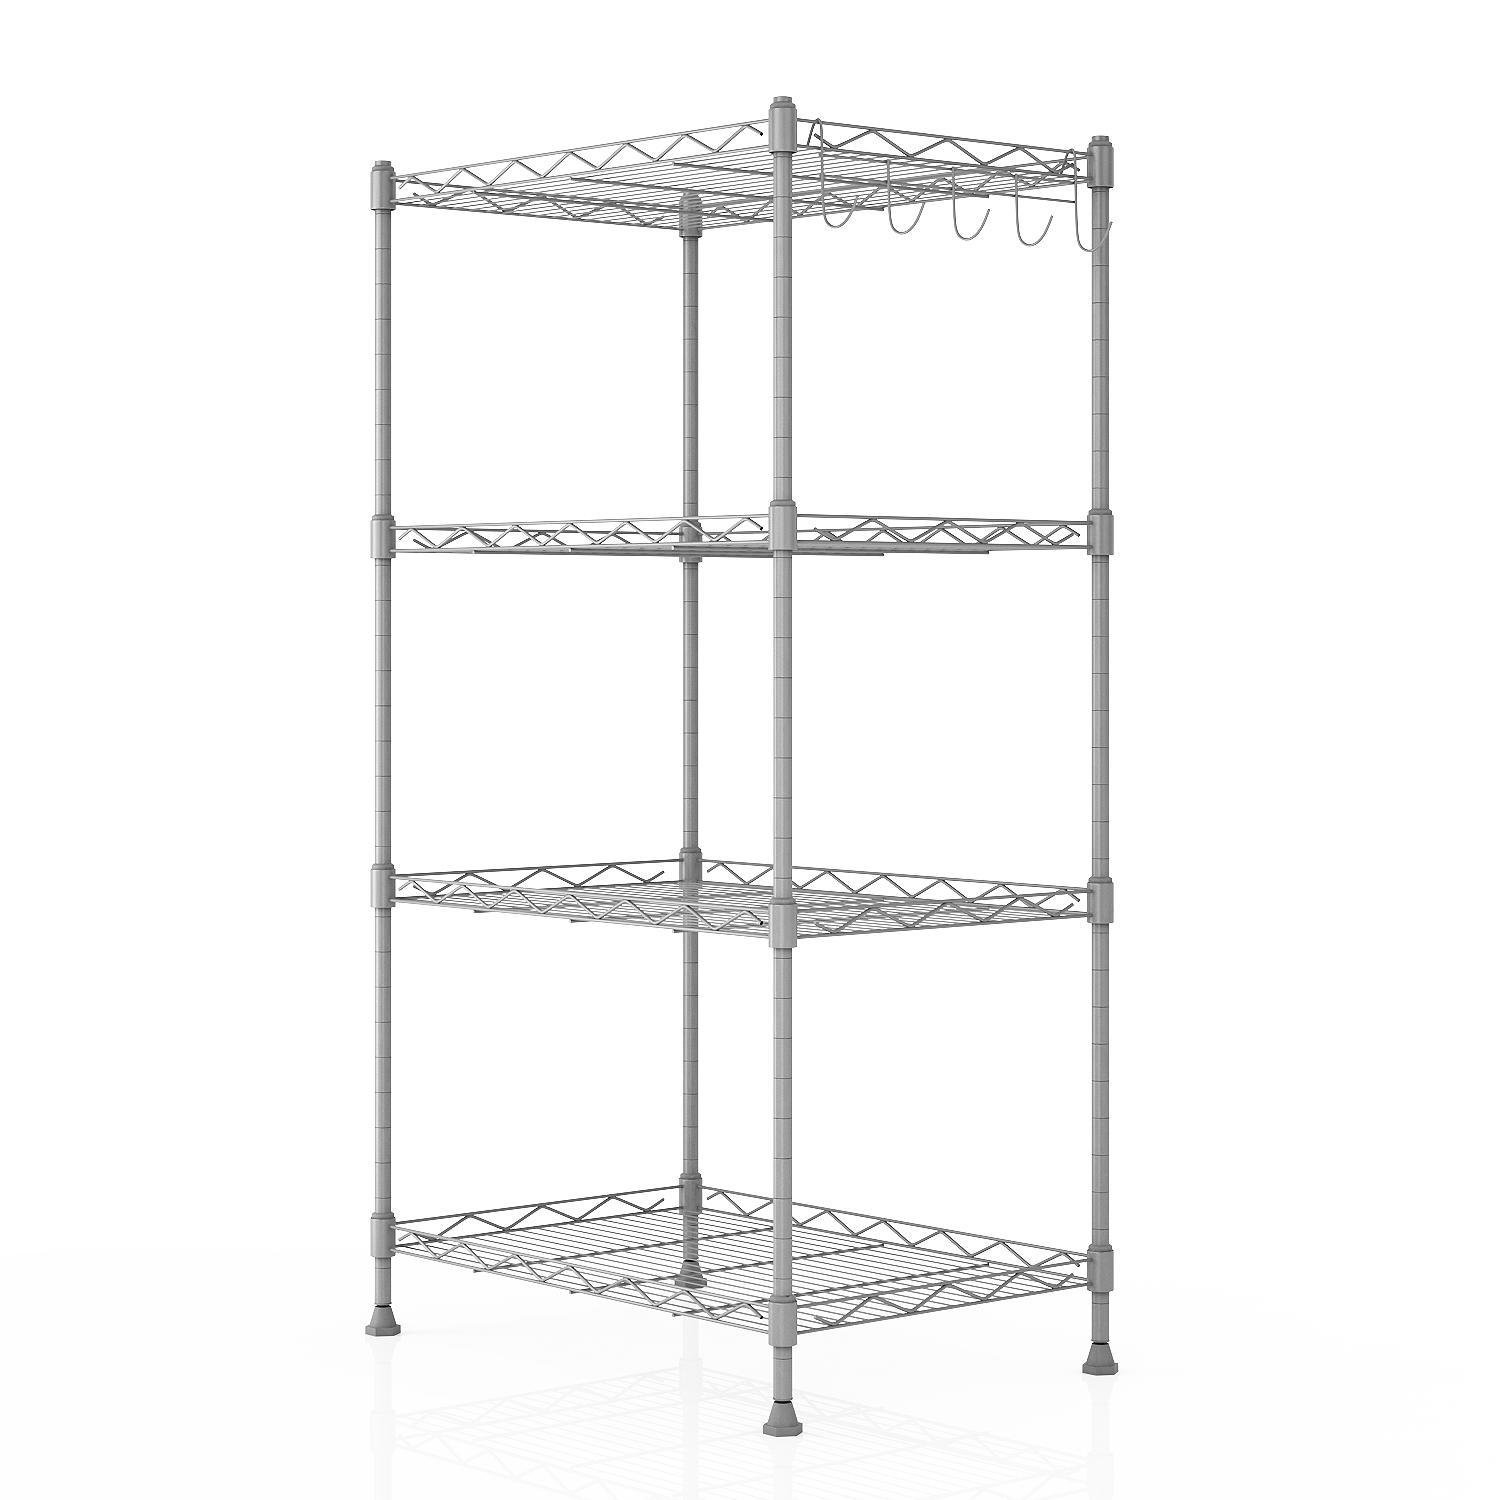 Shelving Unit Storage Standing Shelf Units Adjustable 4 Shelves Chrome Iron Wire Cabinets for Kitchen Bathroom Garage Closet Laundry Room (SIL)